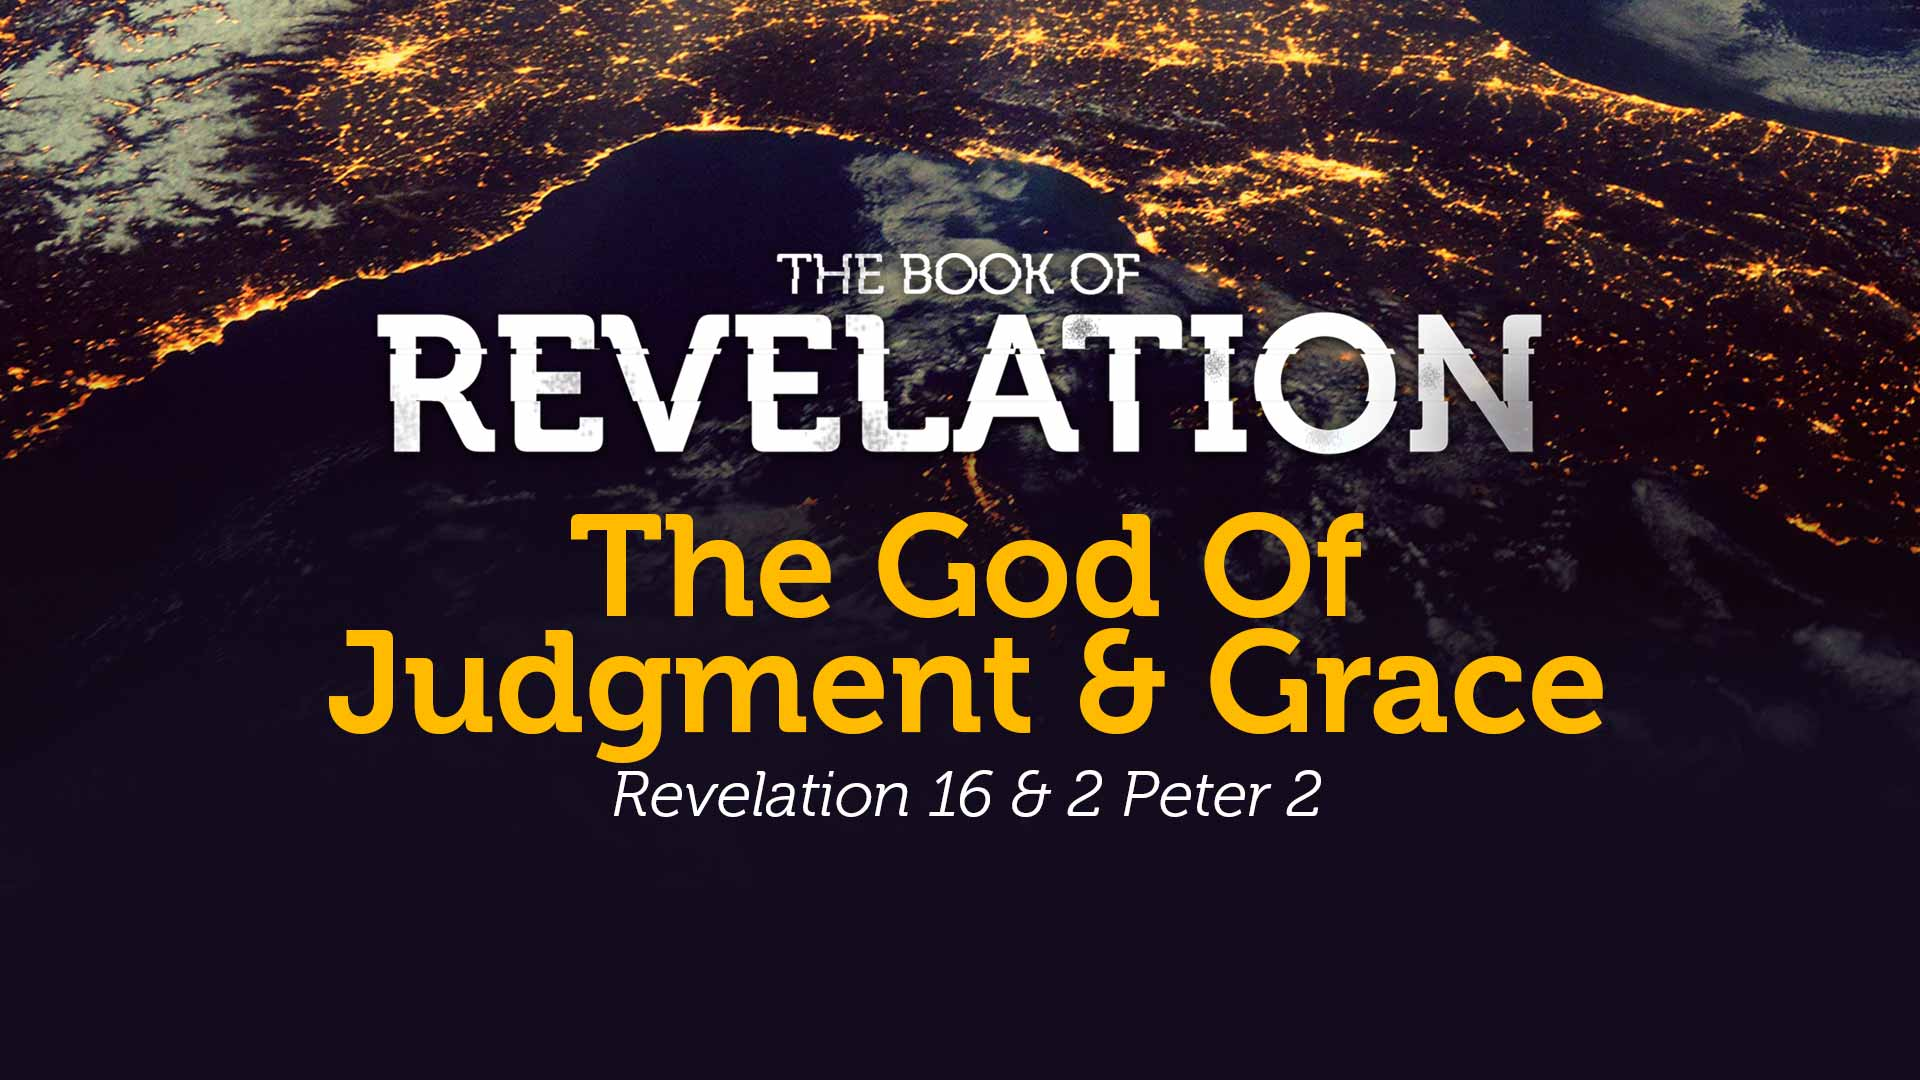 The God of Judgment & Grace